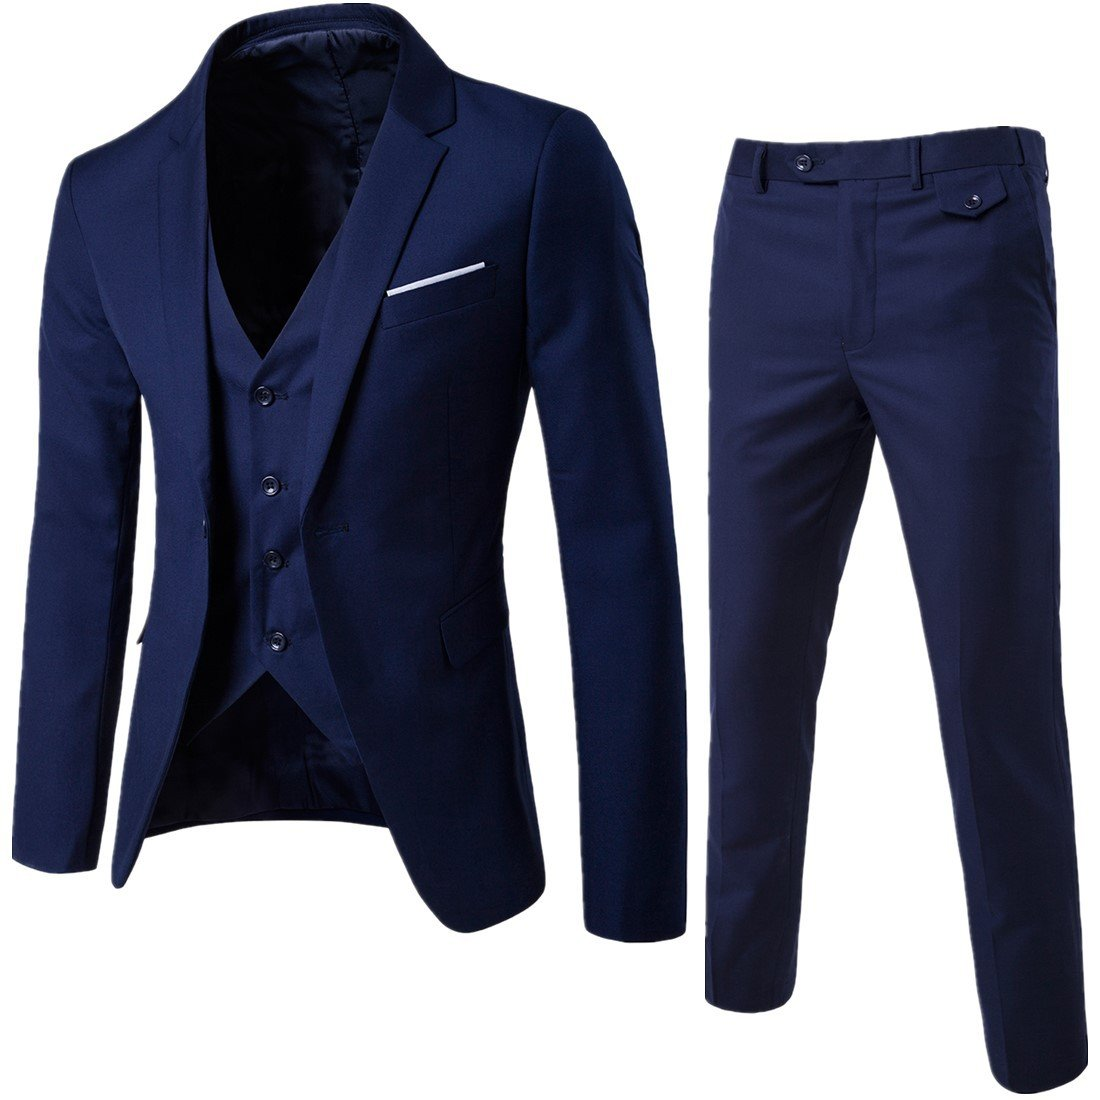 MAGE MALE Men's 3 Pieces Suit Elegant Solid One Button Slim Fit Single Breasted Party Blazer Vest Pants Set